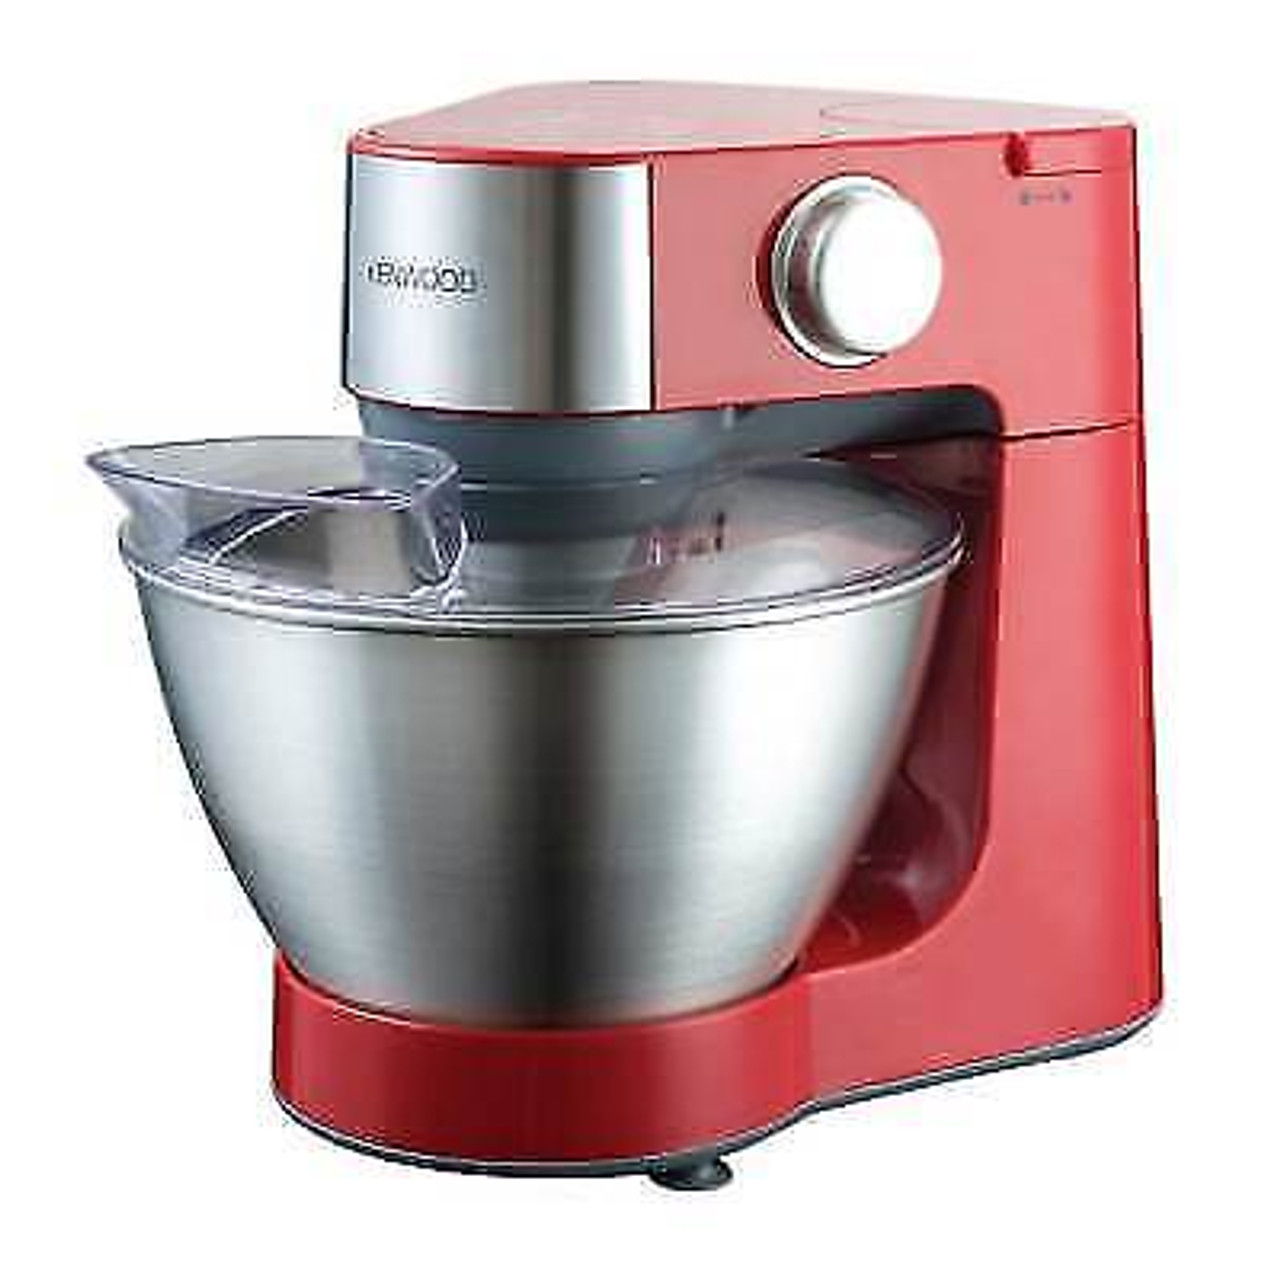 Kenwood KM280RD Prospero Compact Kitchen Mixer - Red